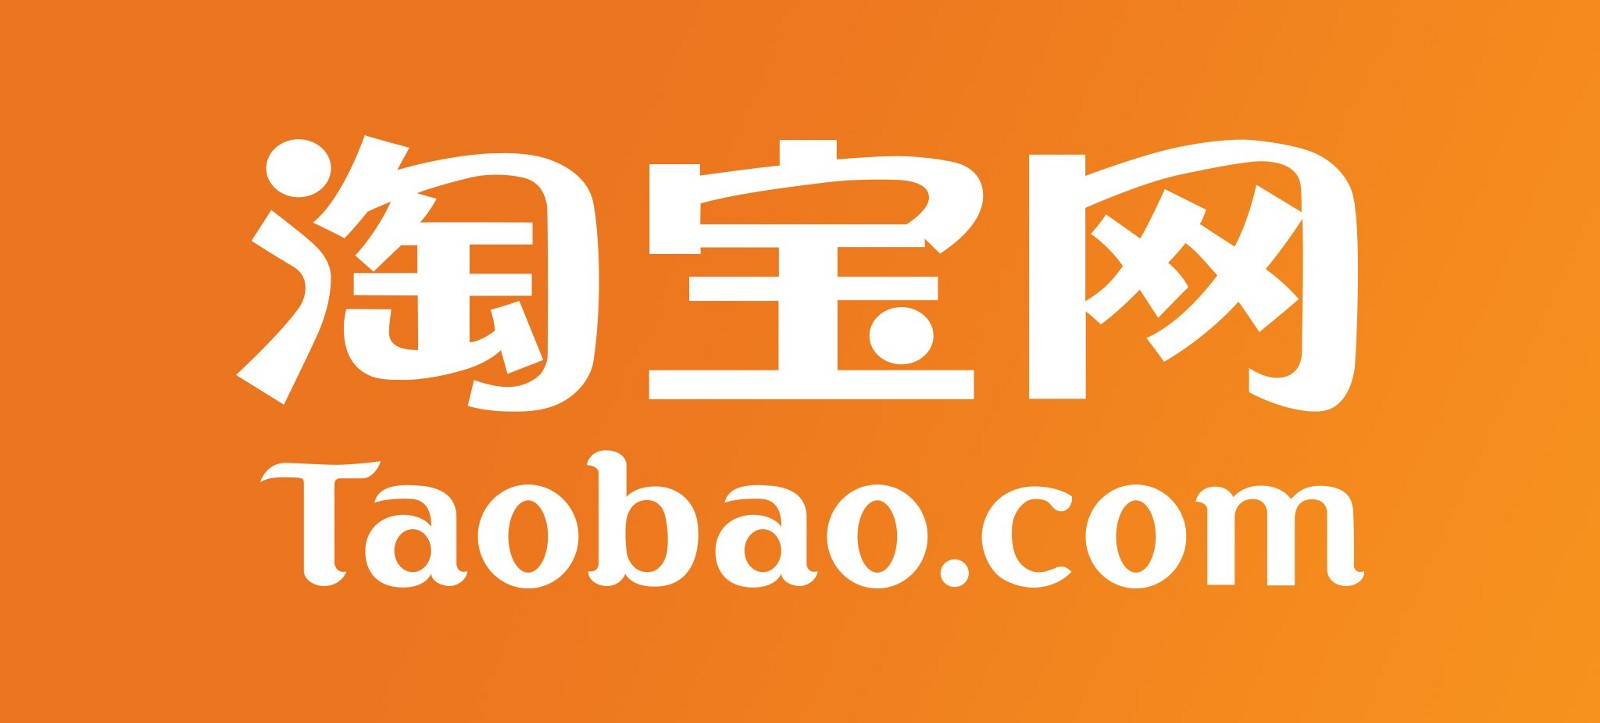 Taobao أحد فروع شركة علي بابا تحظر التعامل بـCryptocurrency